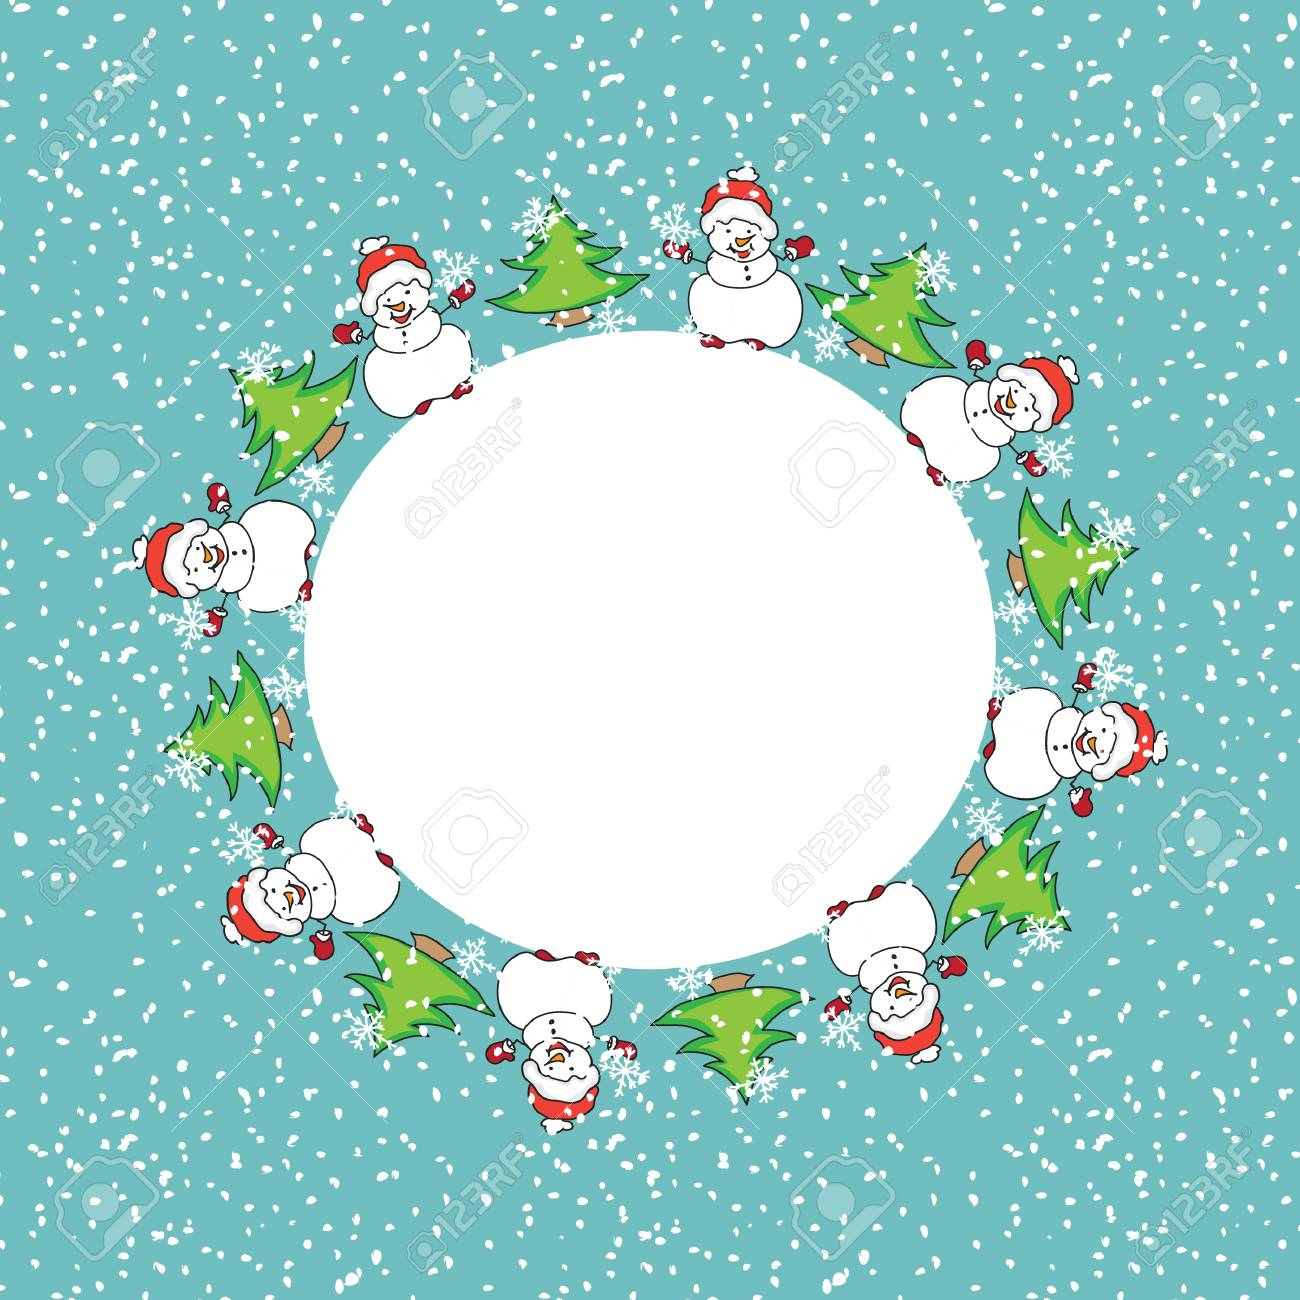 Snowman Christmas Card Template Royalty Free Cliparts, Vectors, And ...